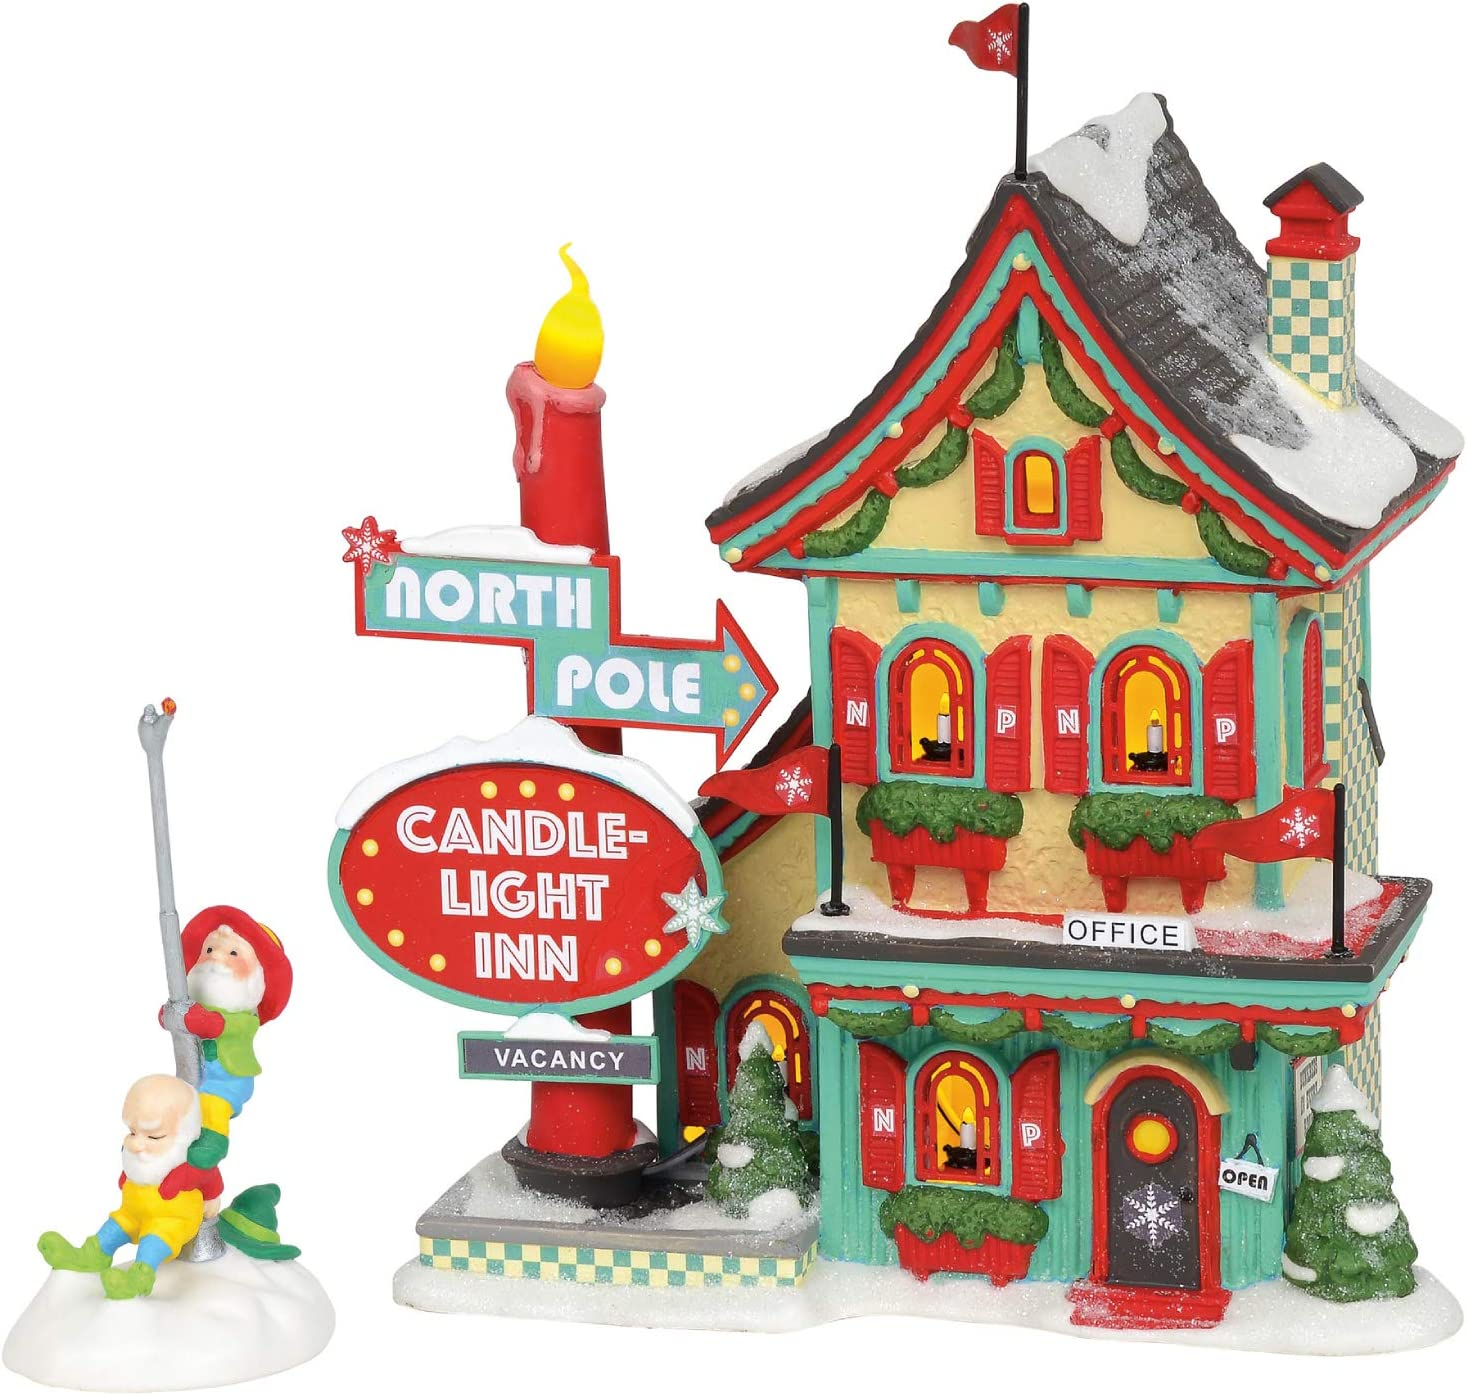 Department 56 North Pole New sales Village Cand Welcoming Series Christmas Factory outlet